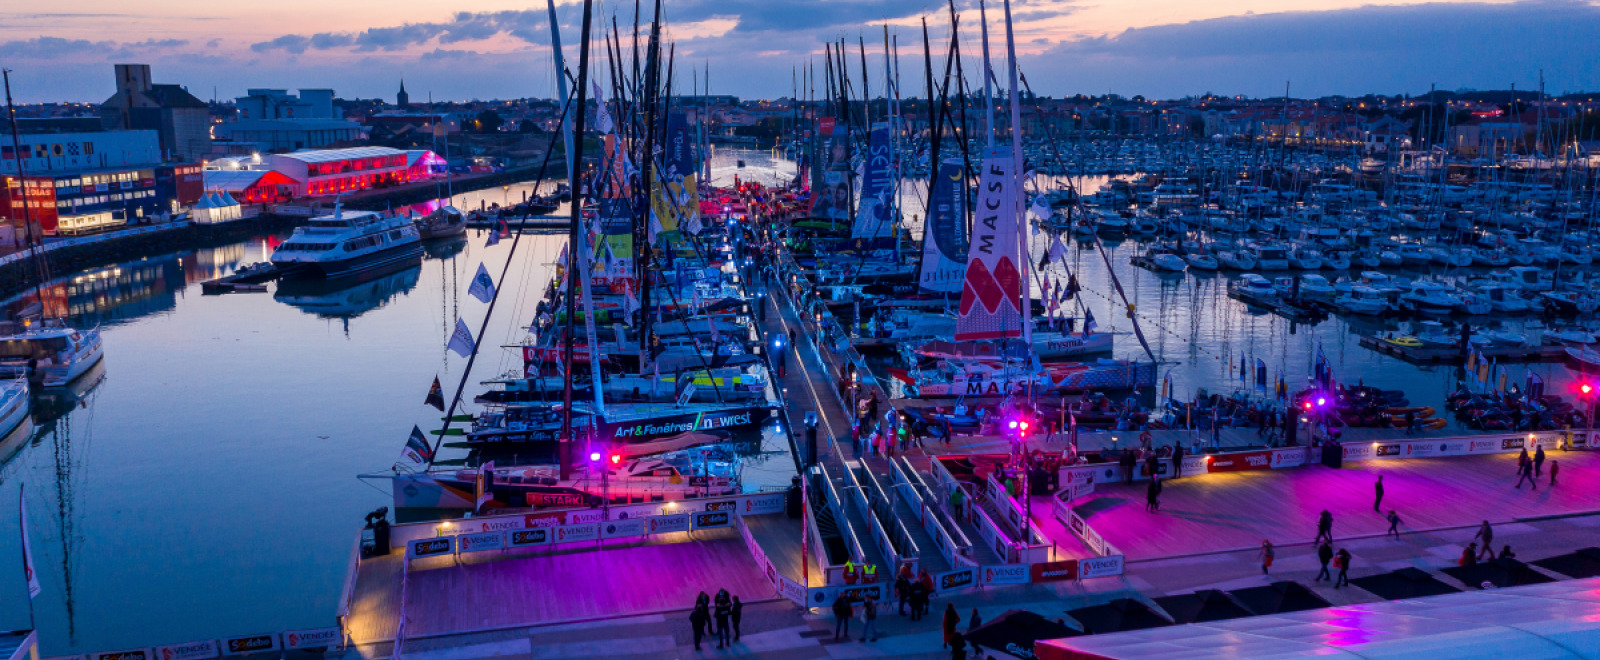 2024 Vendée Globe projects have already been launched